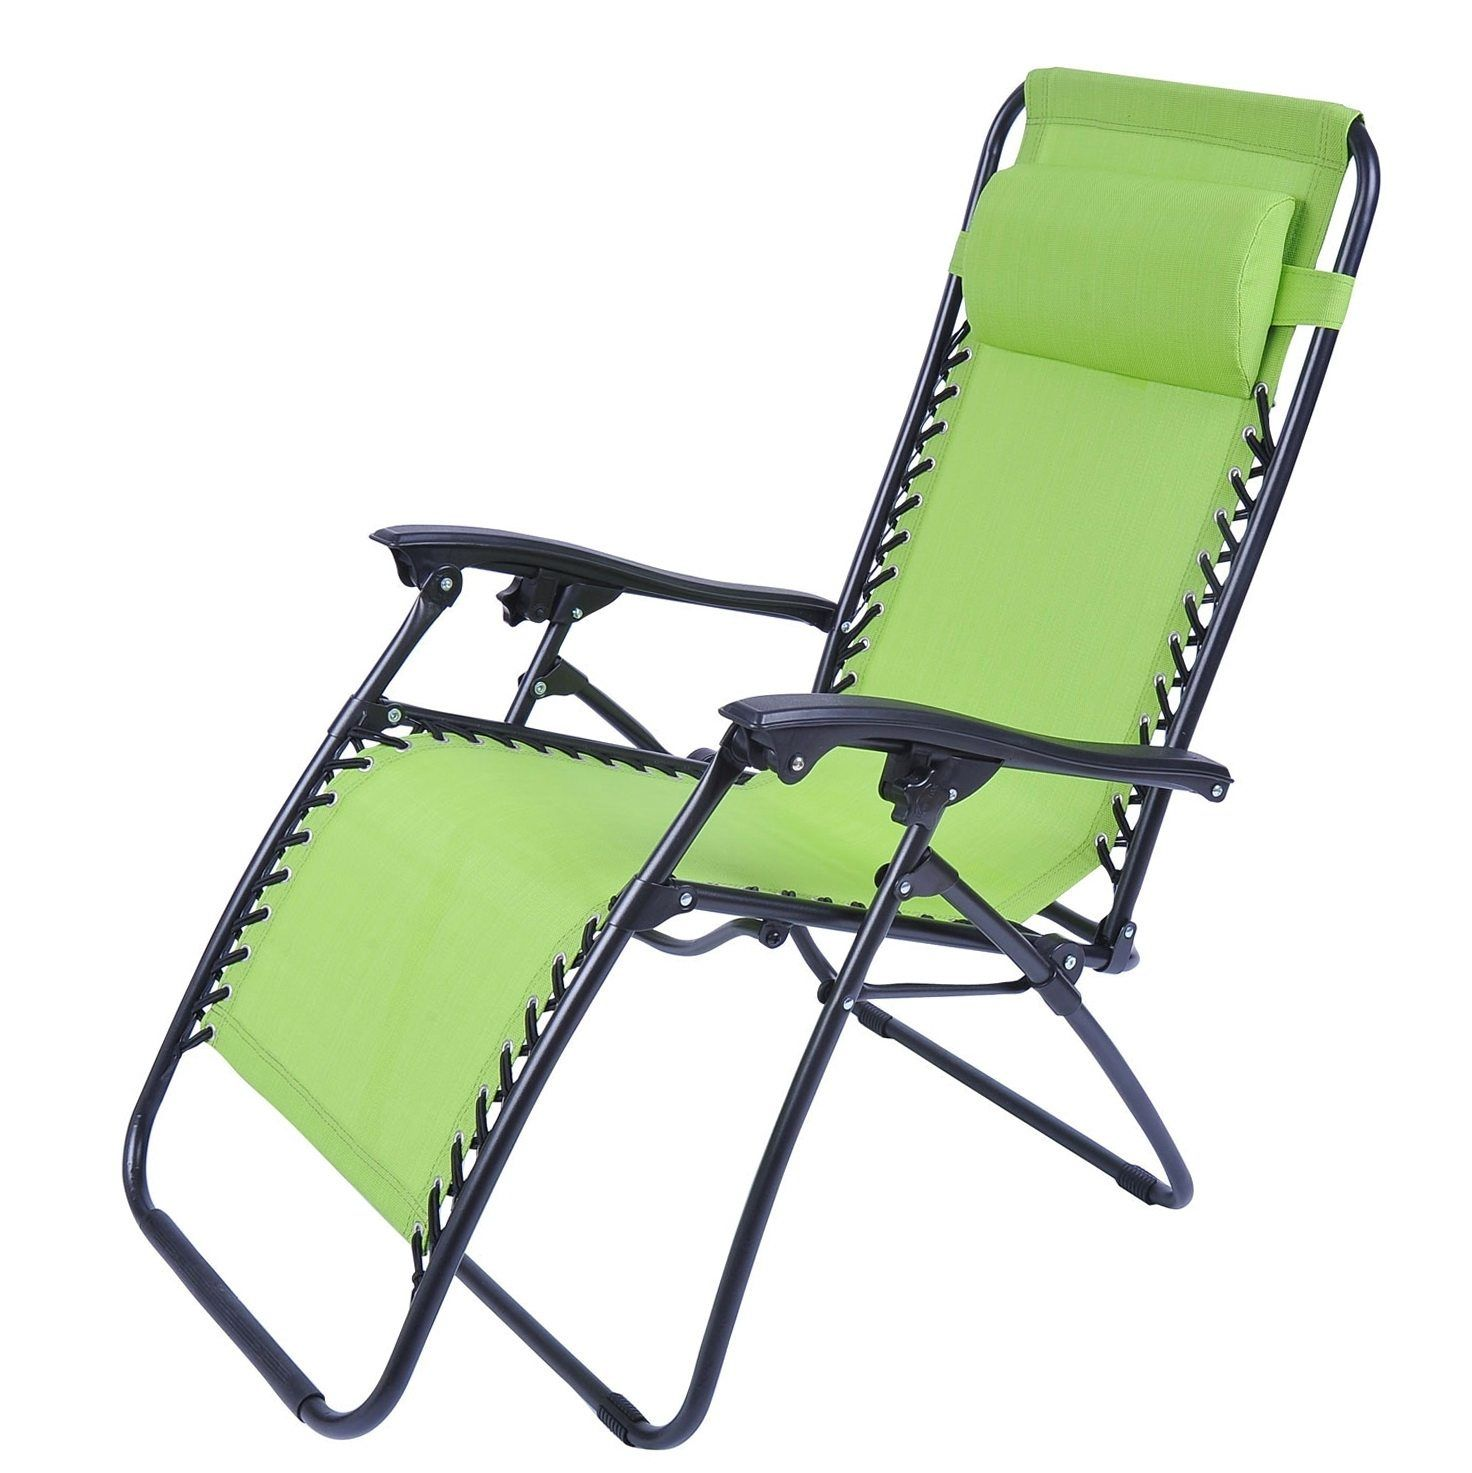 lounge chair outdoor folding folding-chaise-lounge-chair-patio-outdoor-  sc 1 st  Pinterest : folding recliner lawn chair - islam-shia.org